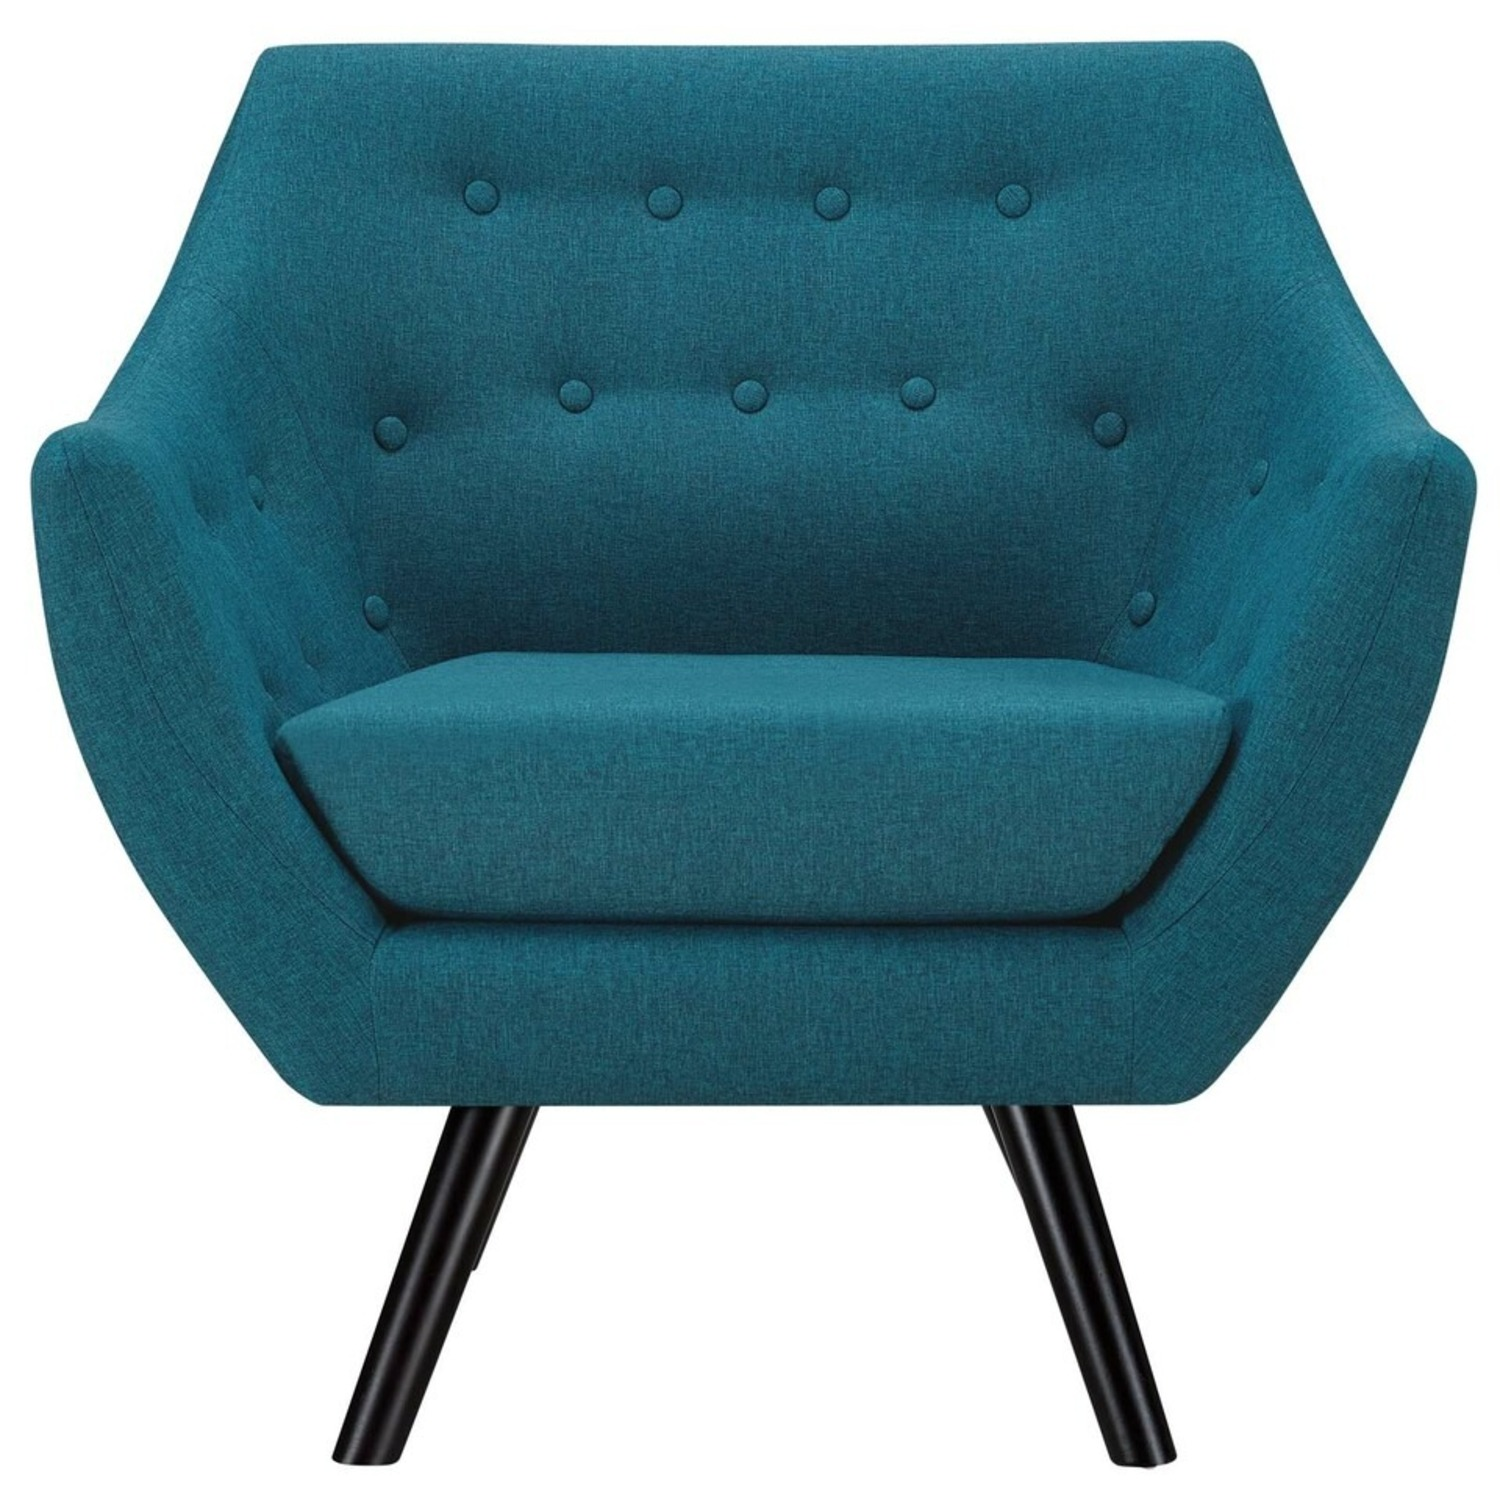 Armchair In Teal Fabric & Tufted Button Upholstery - image-0